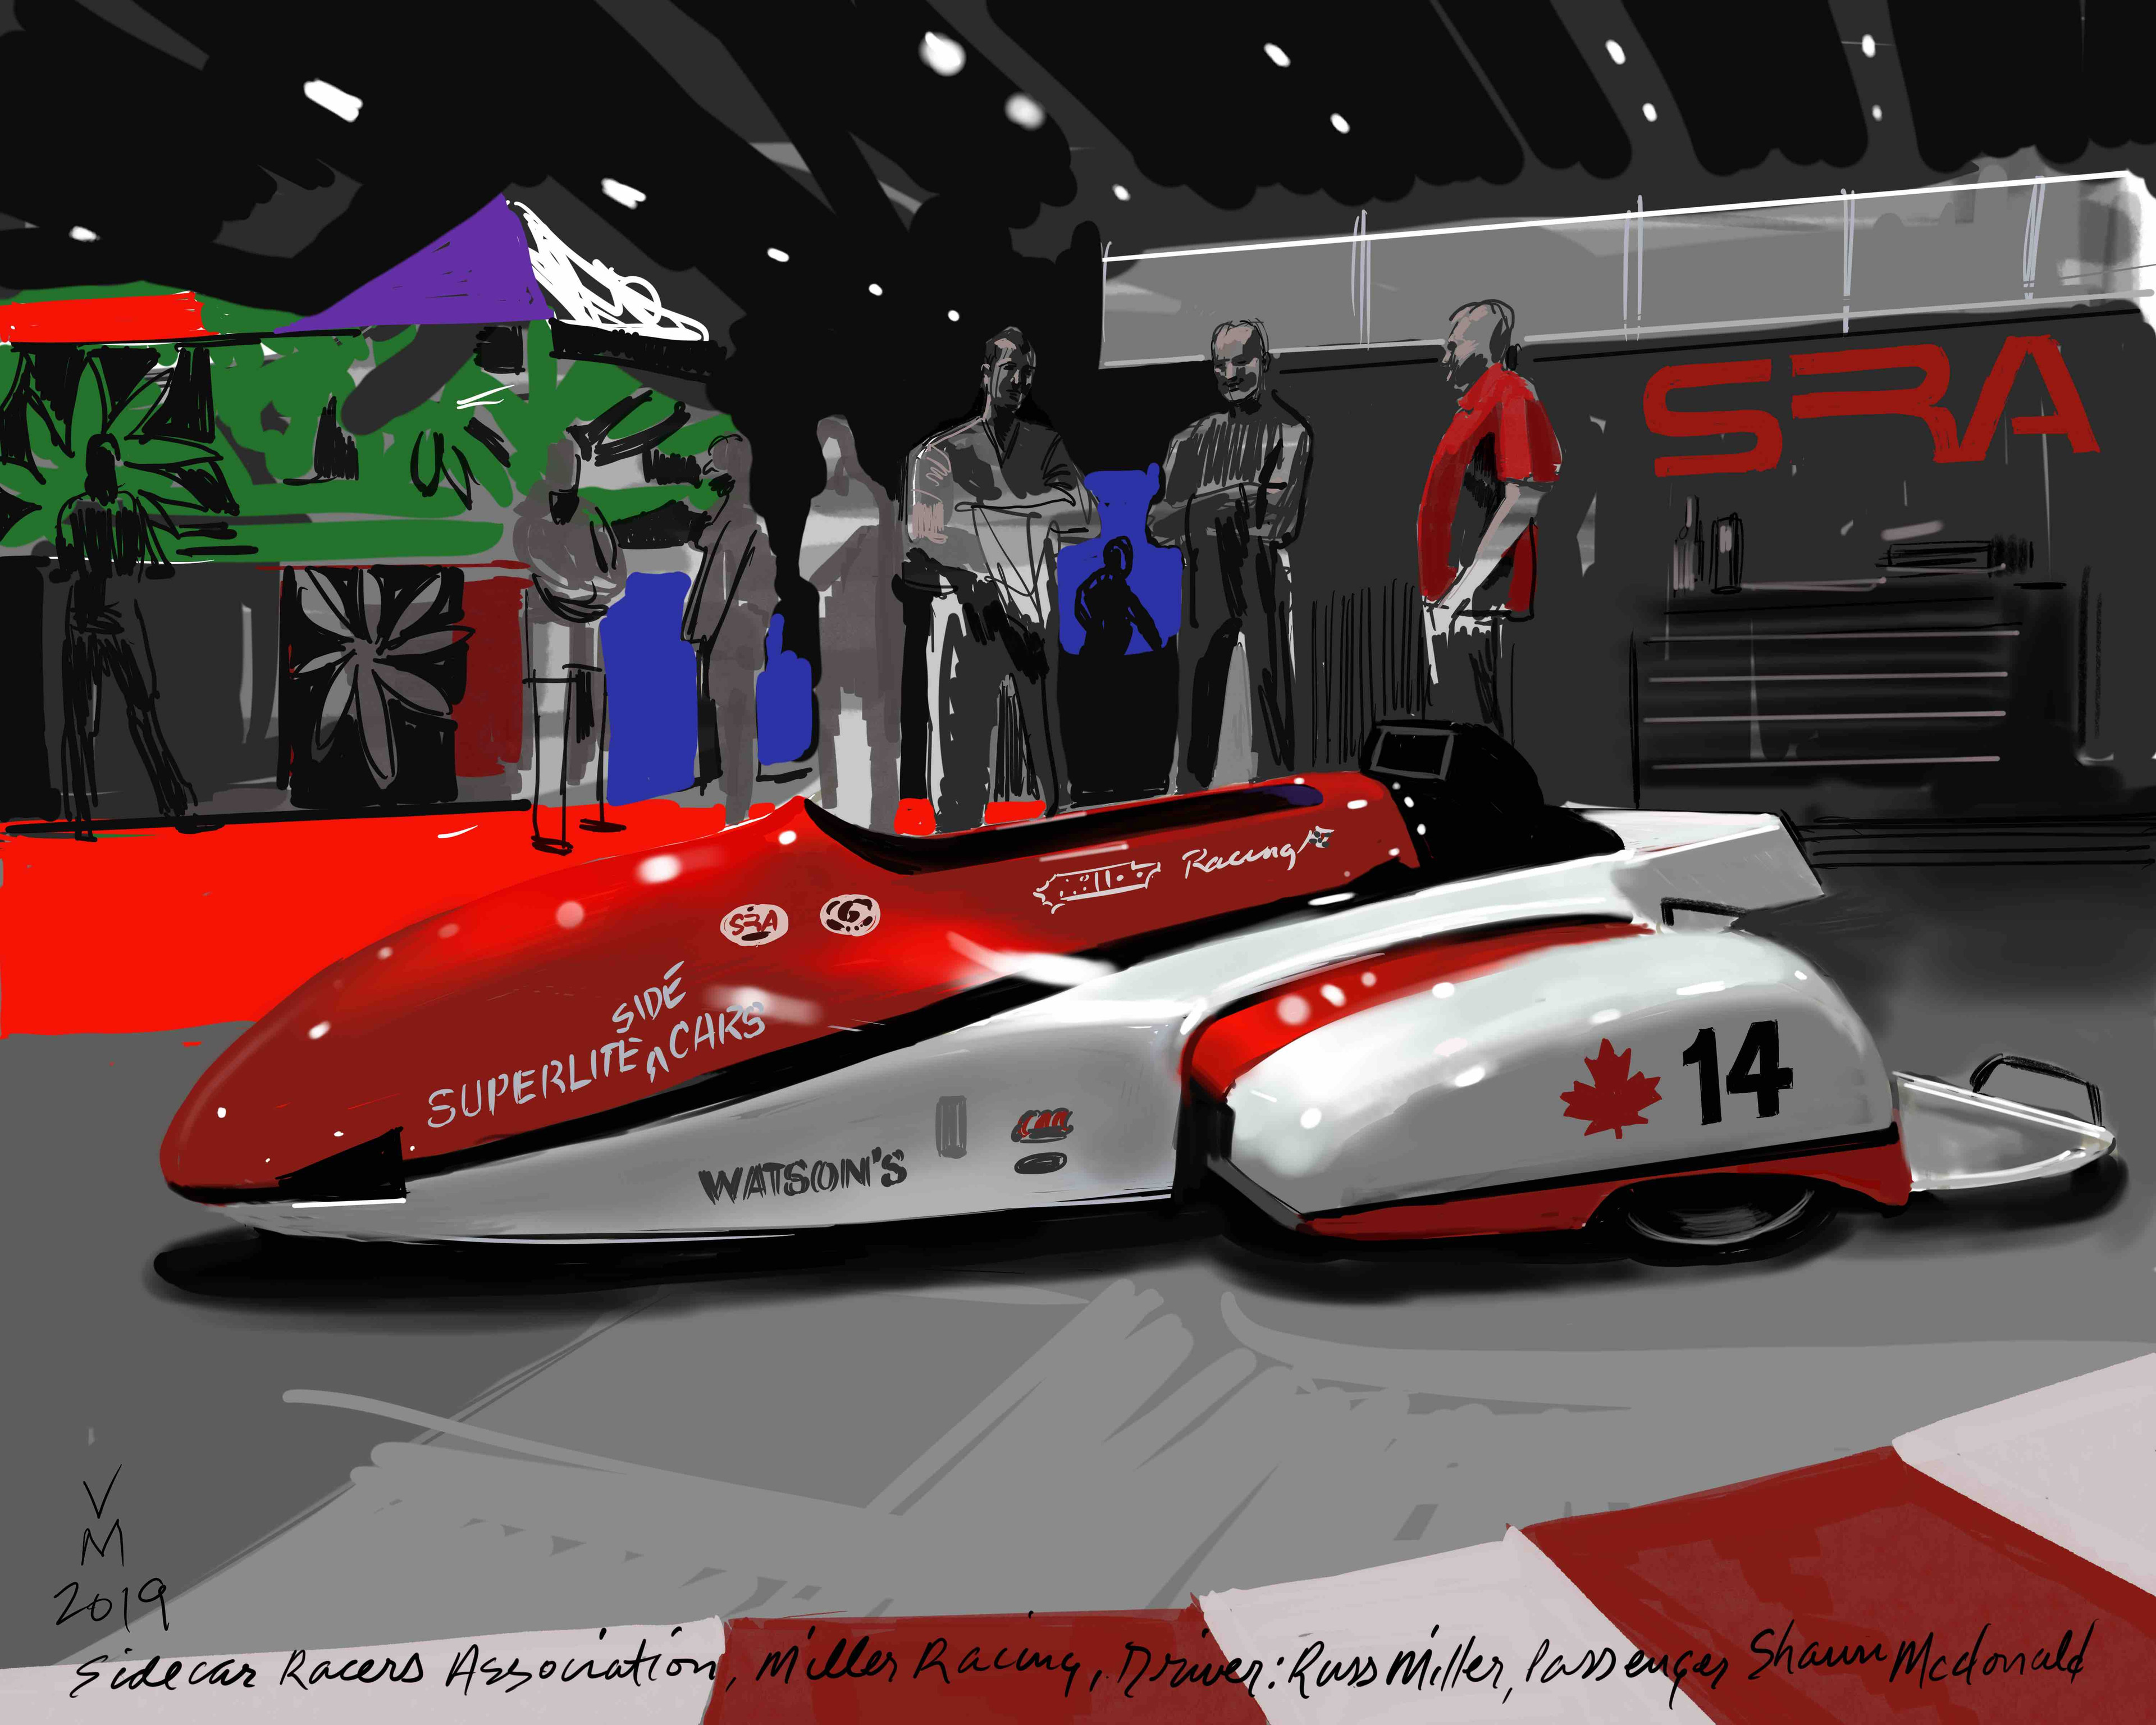 Sidecar Racers Association. This digital painting was created on a i-pad on location.